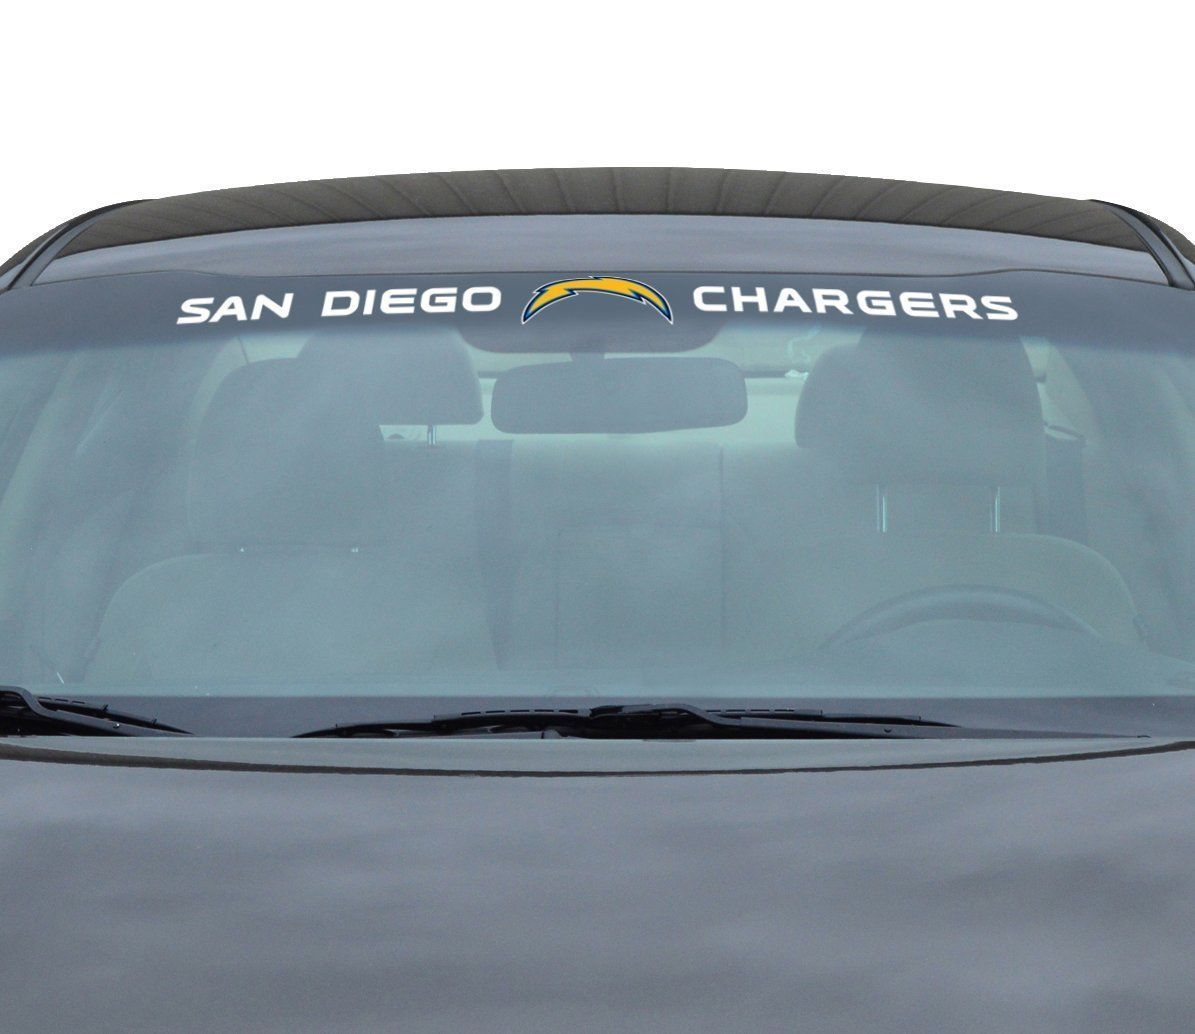 "SAN DIEGO CHARGERS 35"" X 4"" WINDSHIELD REAR WINDOW DECAL CAR TRUCK NFL FOOTBALL"